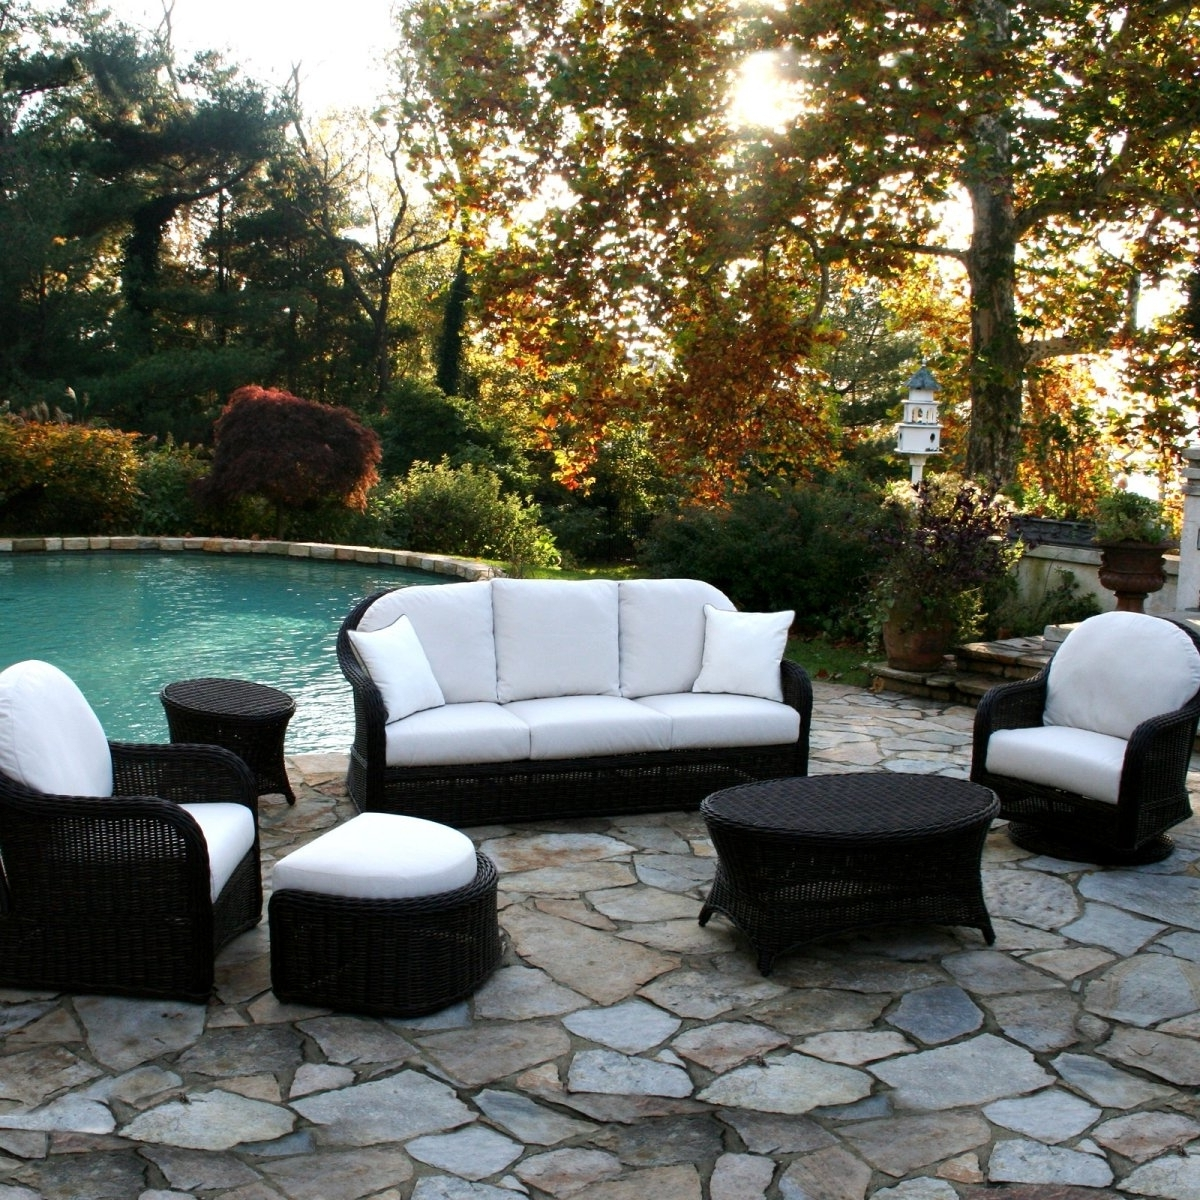 Conversation Chairs Patio Furniture Lowes Patio Conversation Sets Intended For Recent Patio Conversation Sets With Swivel Chairs (View 10 of 15)